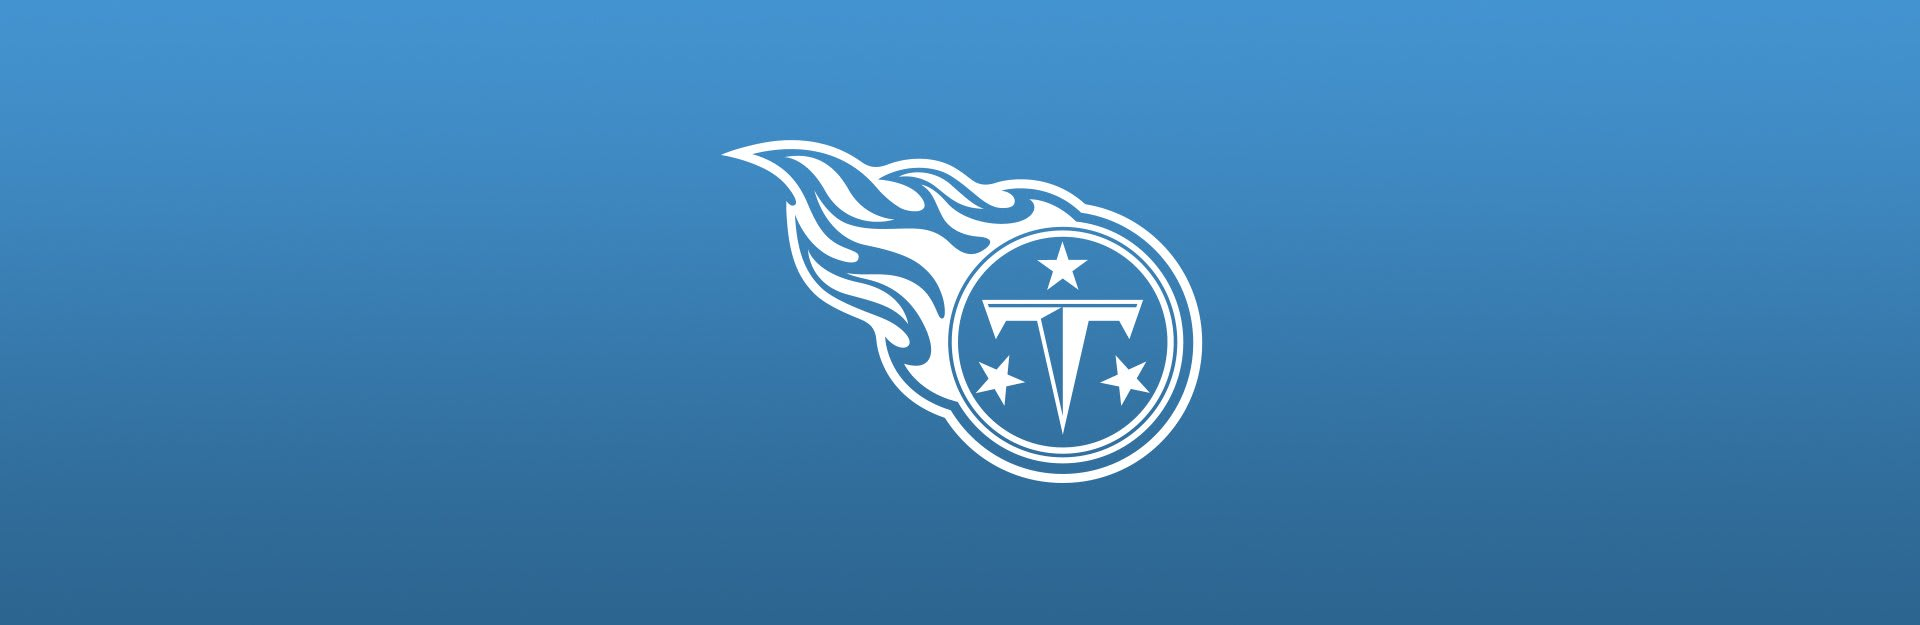 Tennessee Titans logo overlaid on blue background